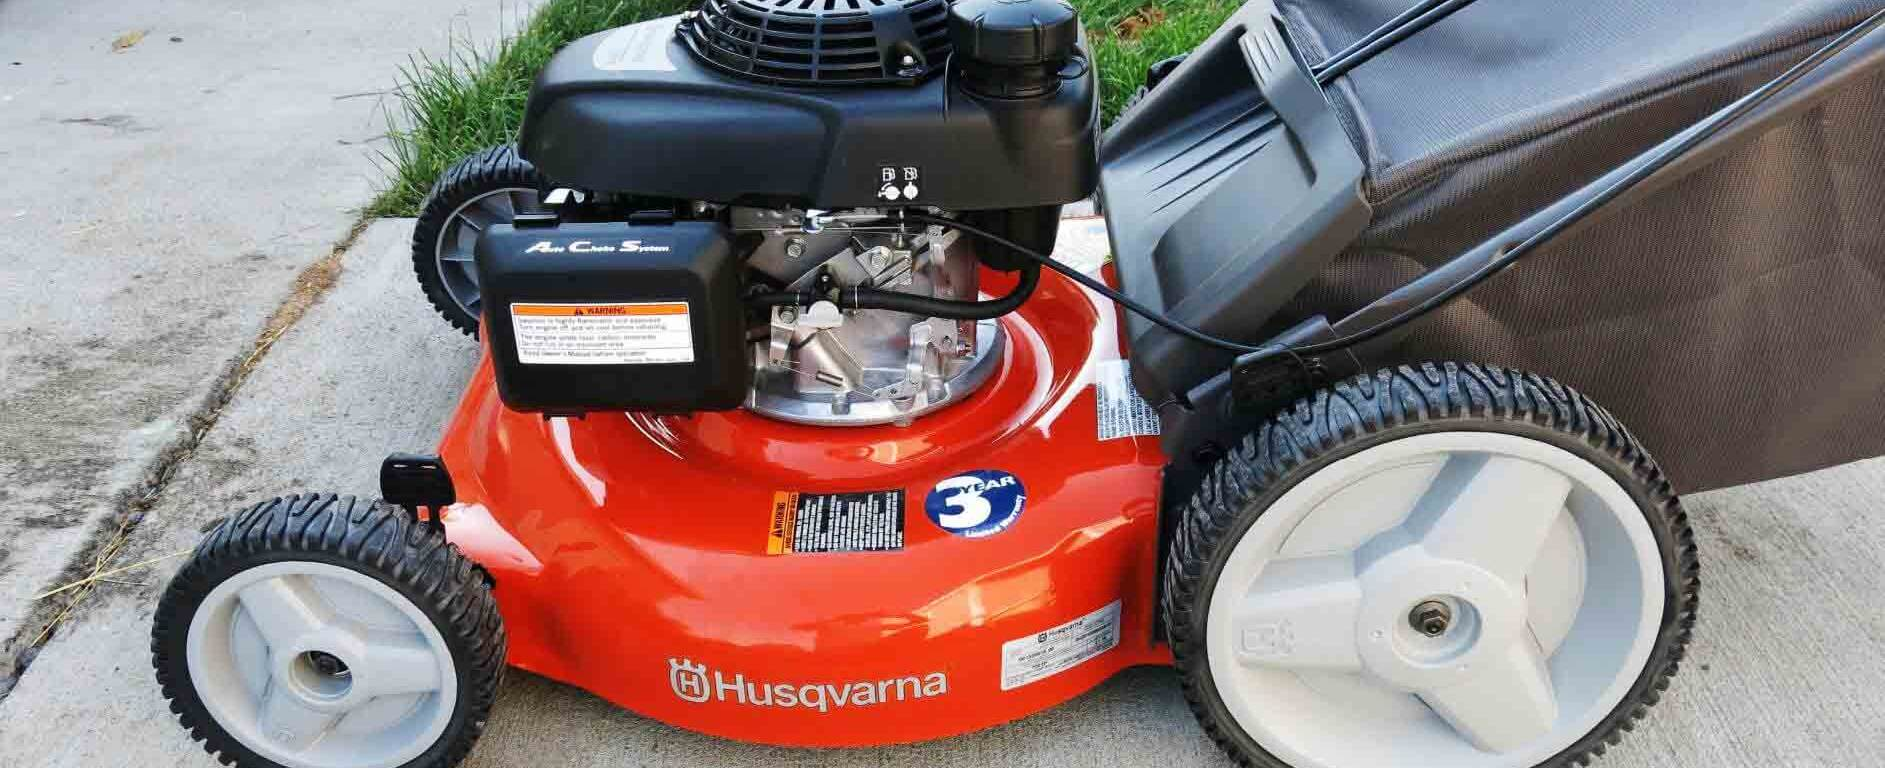 Husqvarna 7021P Review - Best Husqvarna Lawn Mower